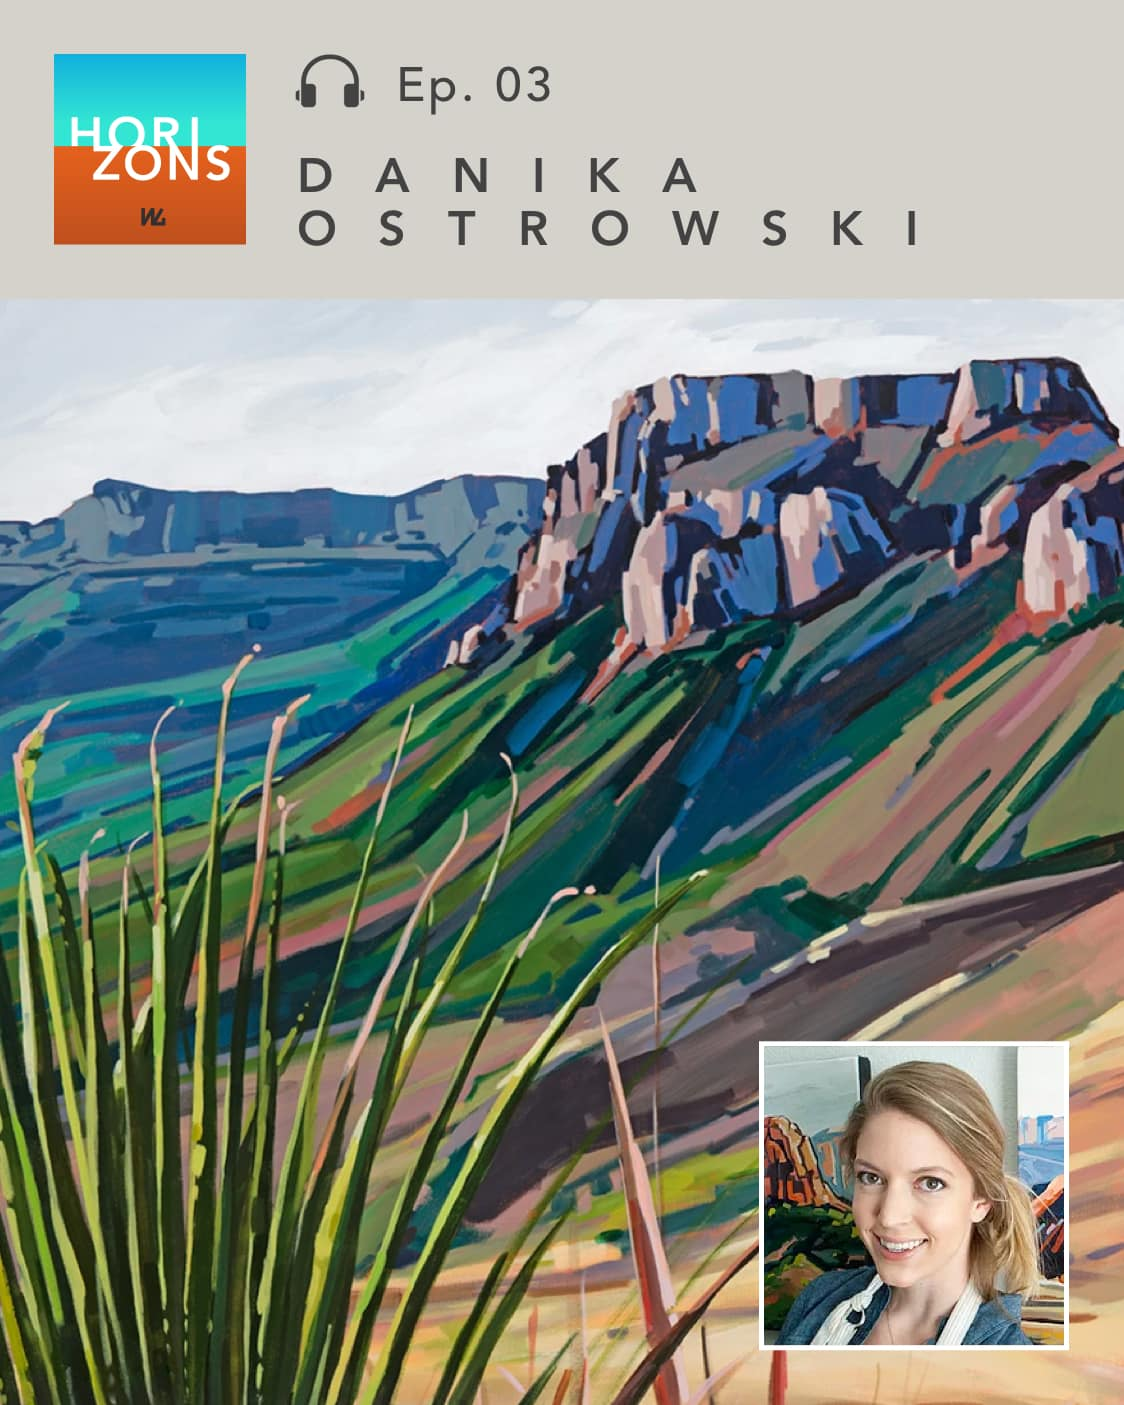 Danika Ostrowski on Horizons by Western Gallery